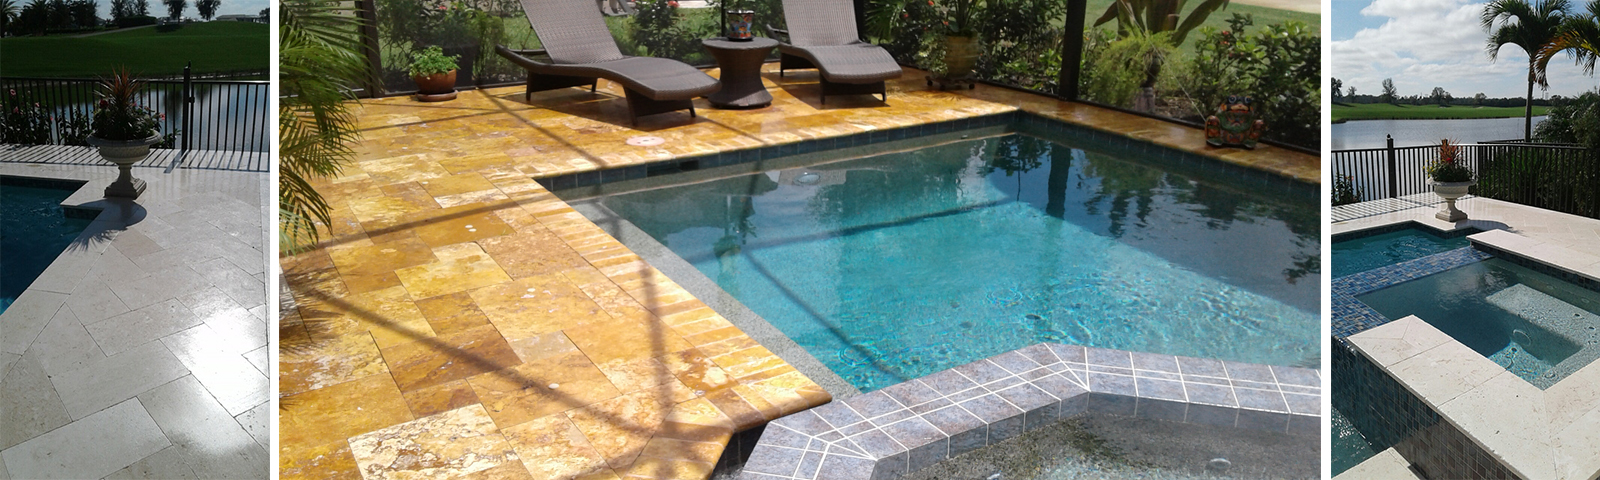 Travertine we cleaned by a pool